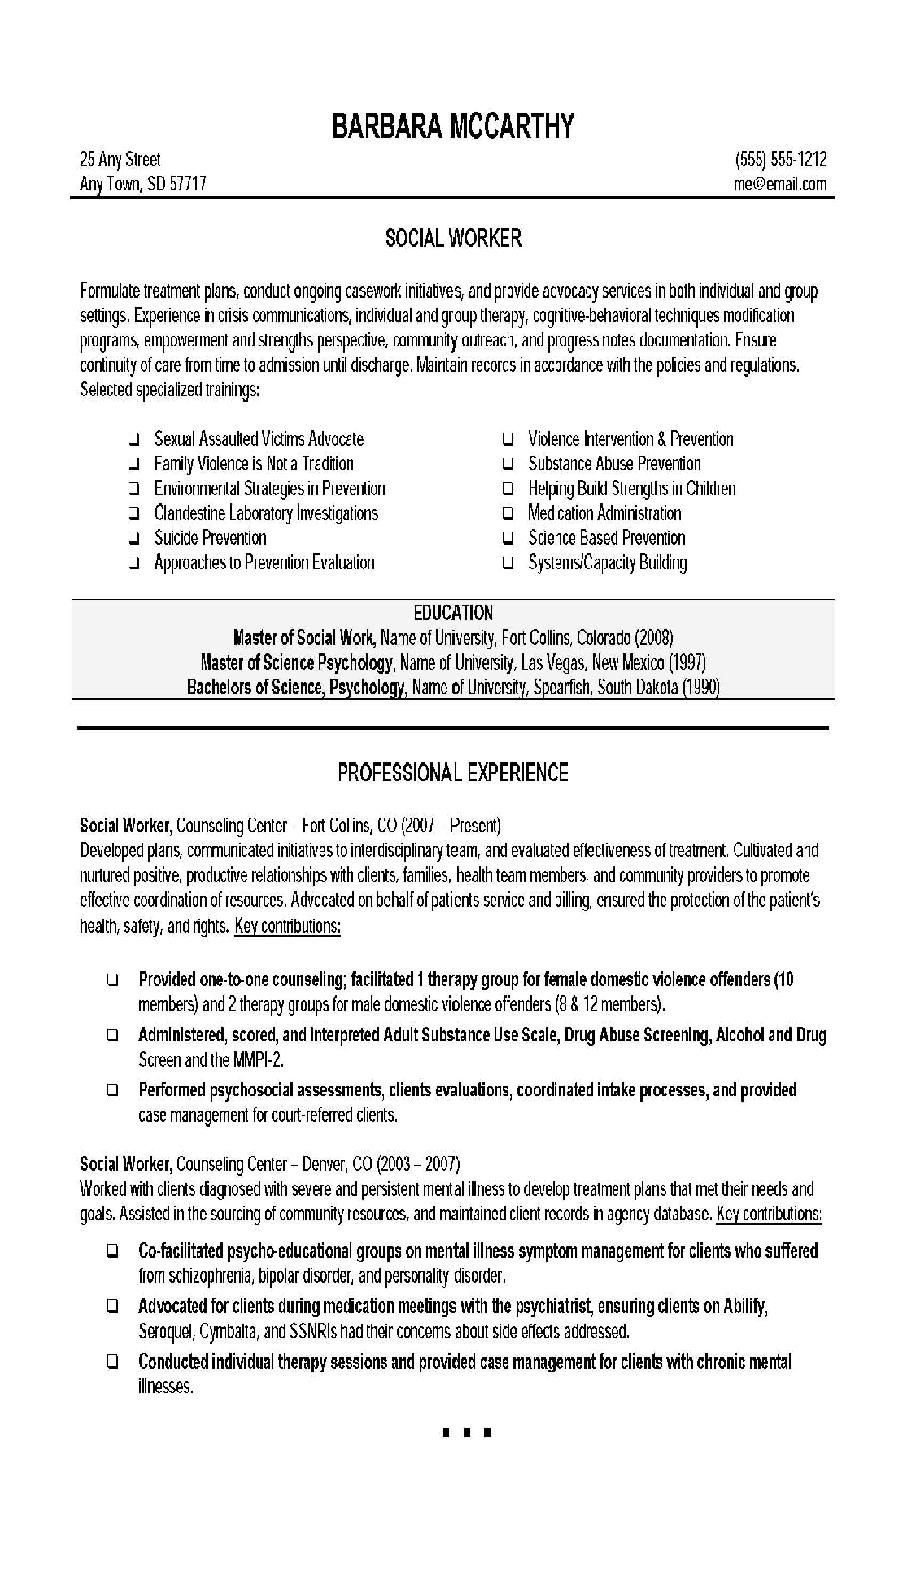 Public Health Social Worker Sample Resume word document border ...